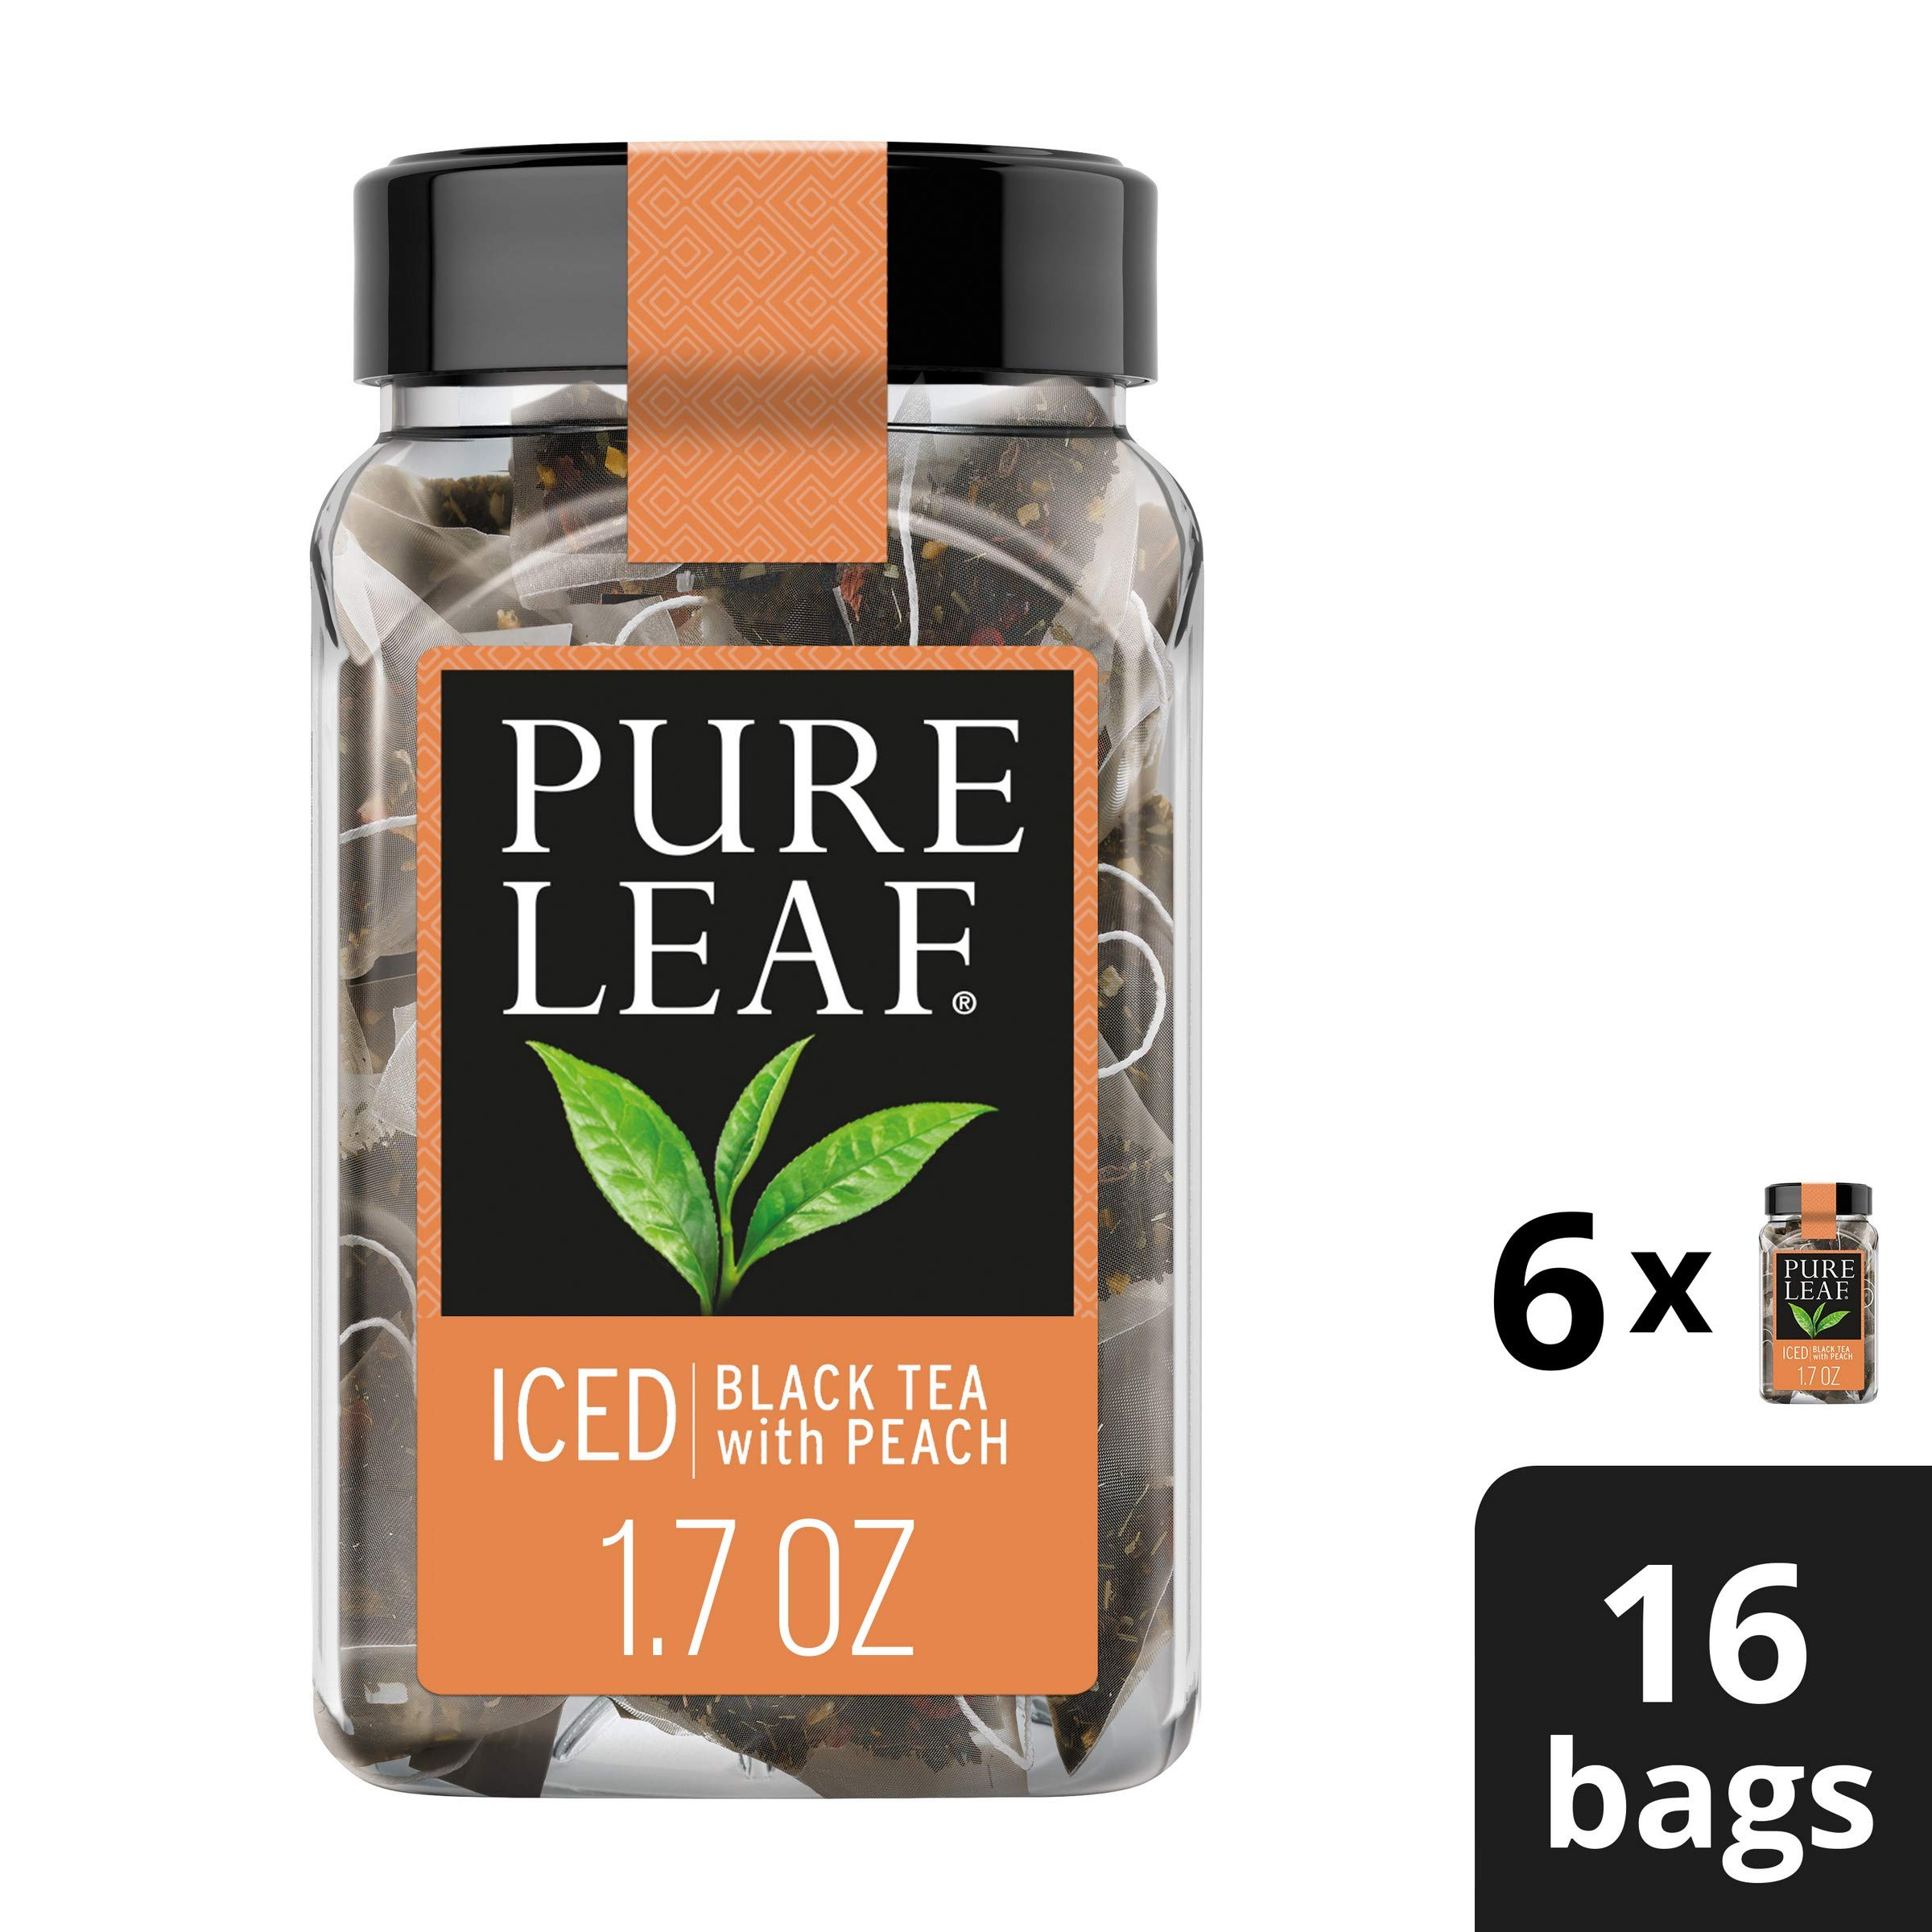 Pure Leaf Iced Tea Bags, Black Tea with Peach, 16 ct (Pack of 6) by Pure Leaf